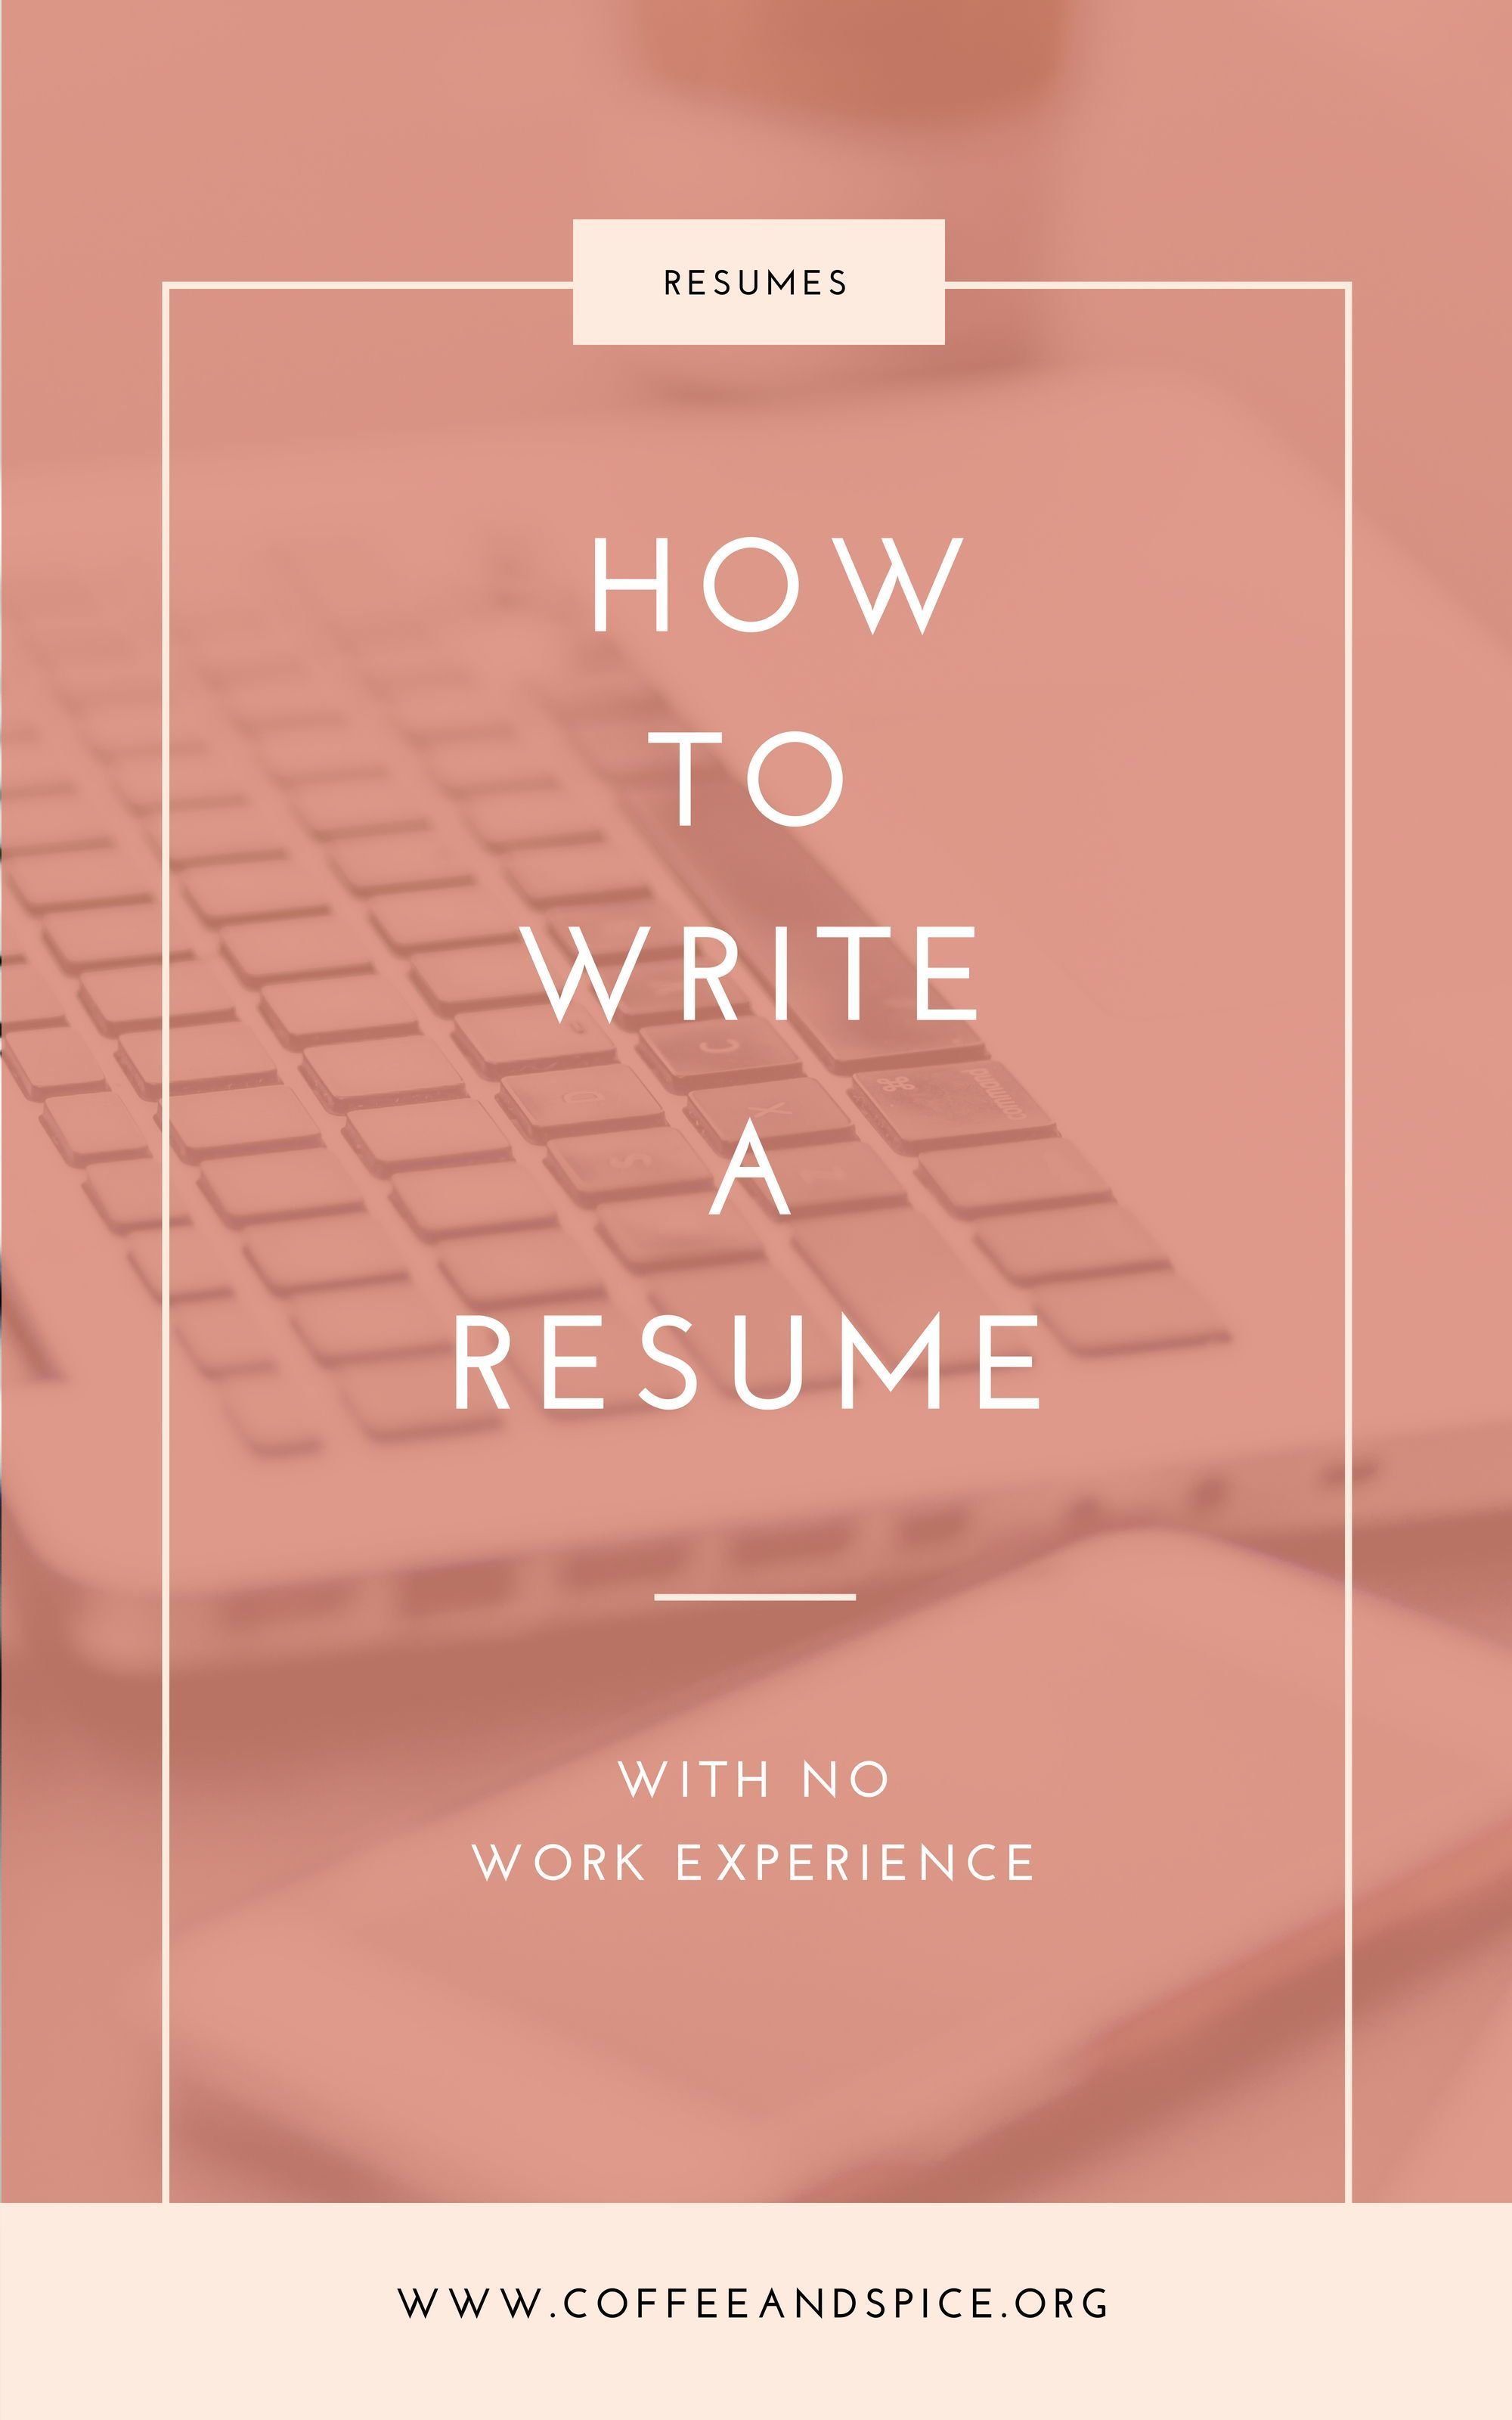 How To Write A Resume With No Work Experience How To Write A Resume With No Work Experience  Resume Objective .